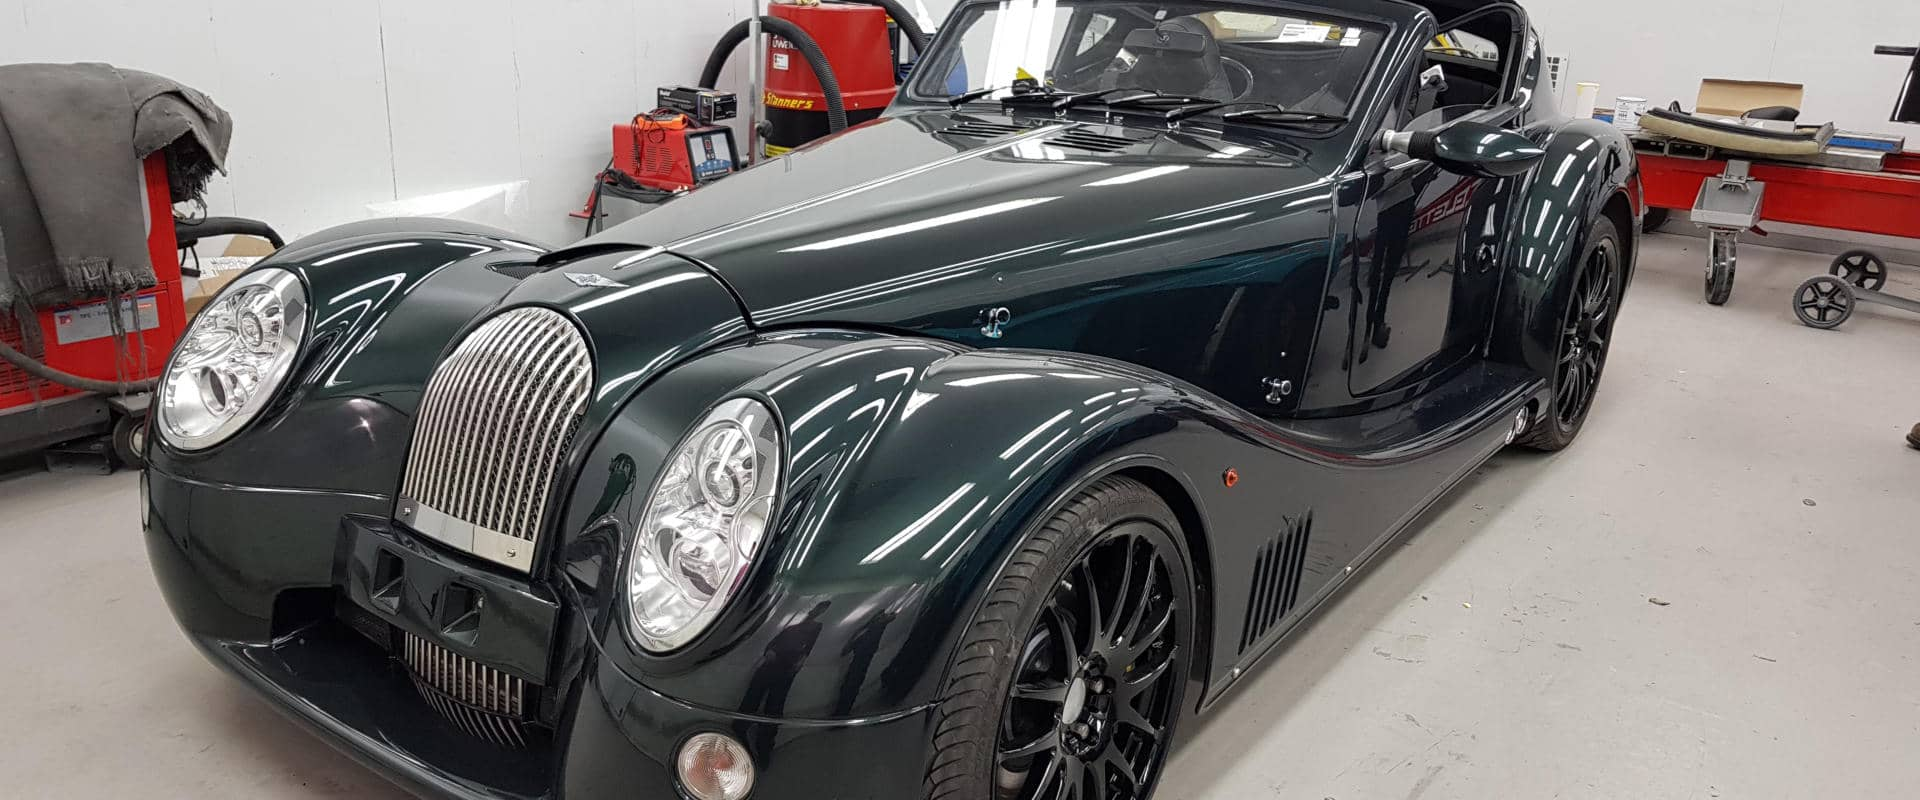 morgan sports car upholstery specialist.